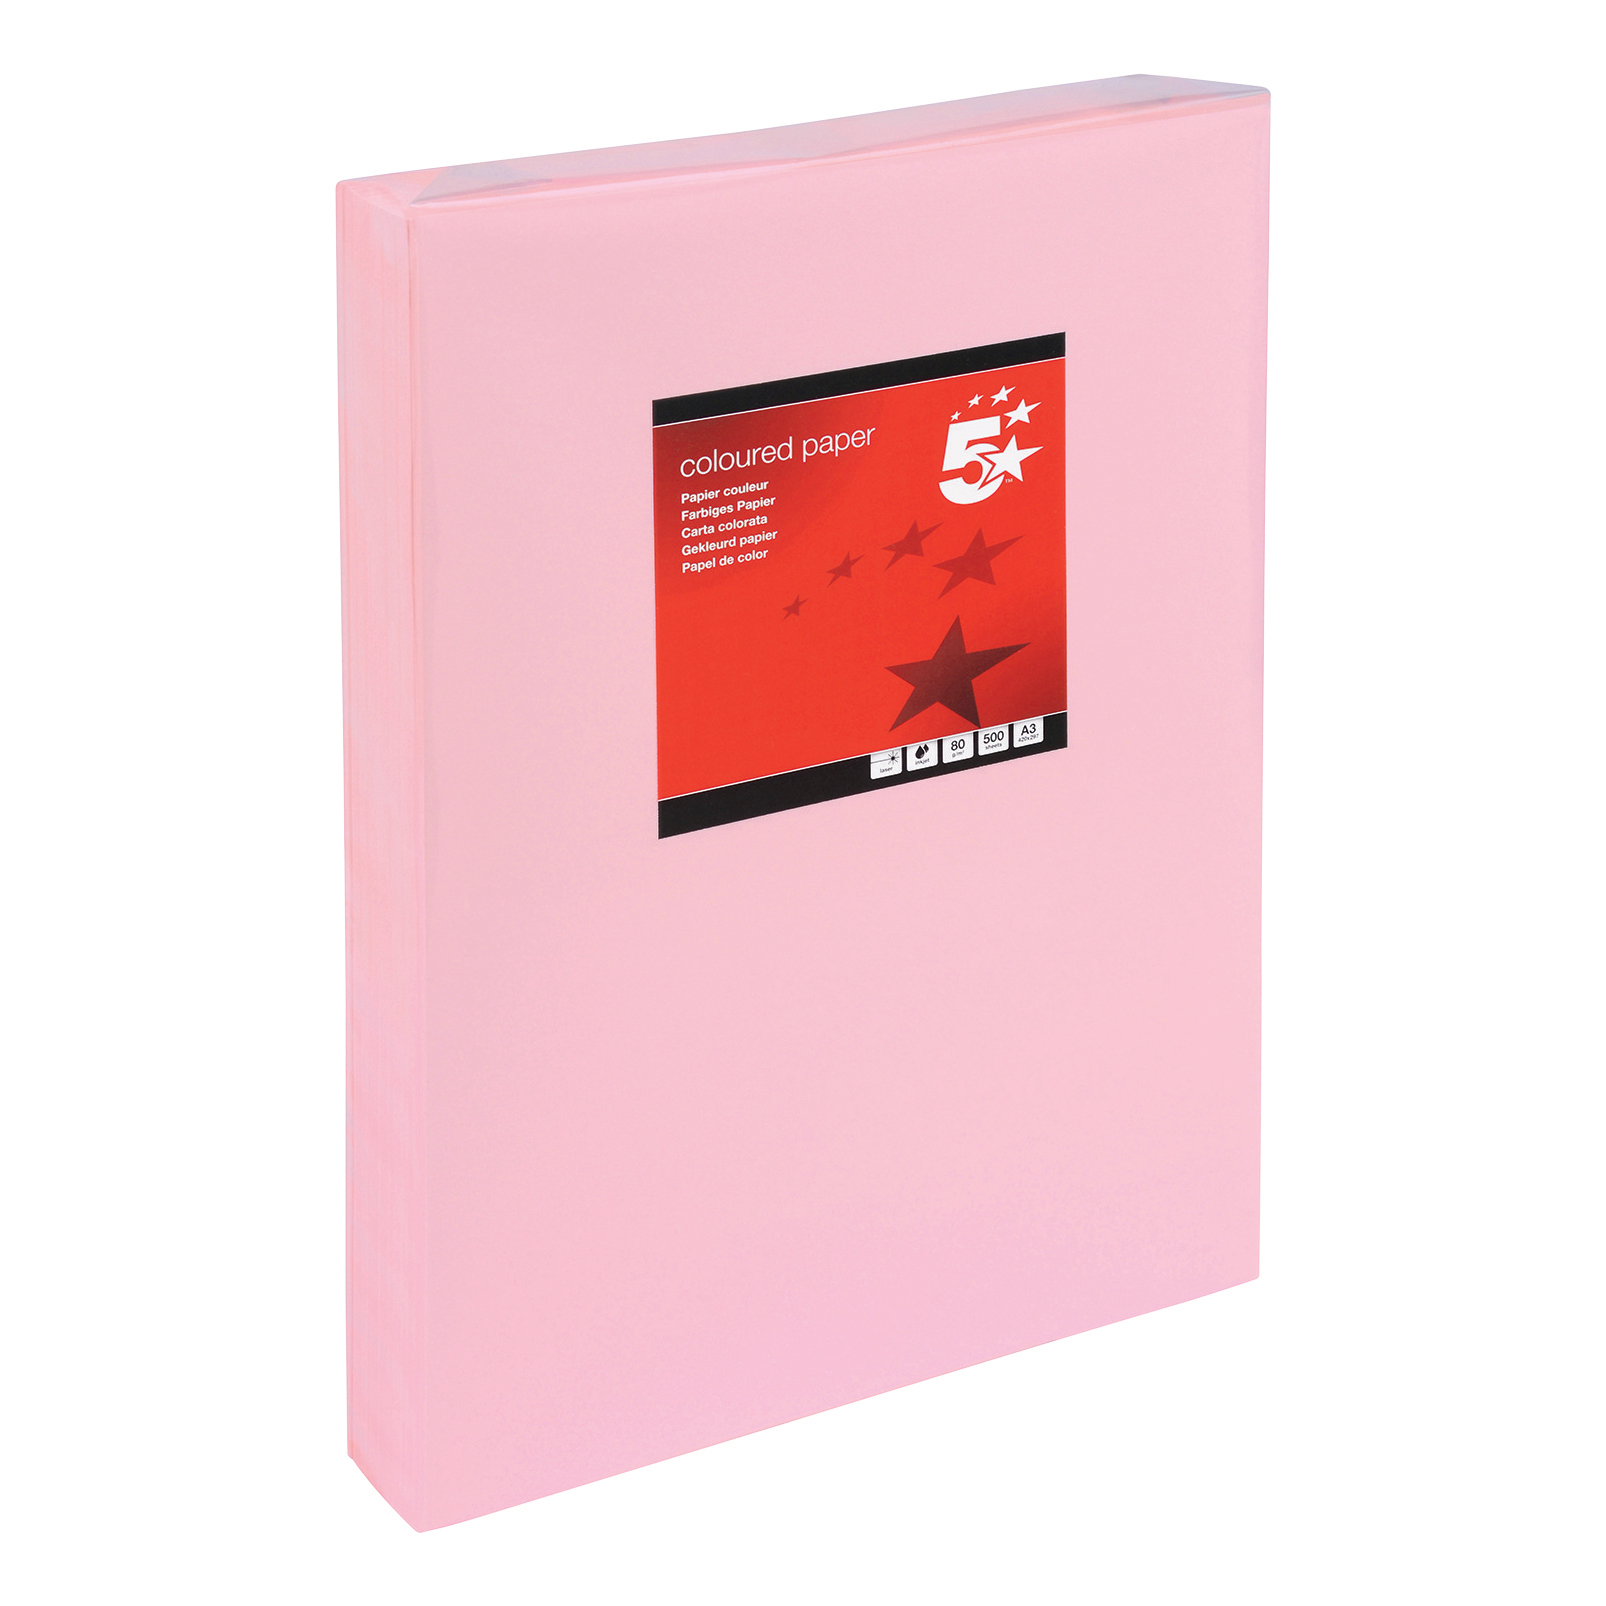 A3 5 Star Office Coloured Copier Paper Multifunctional Ream-Wrapped 80gsm A3 Light Pink 500 Sheets